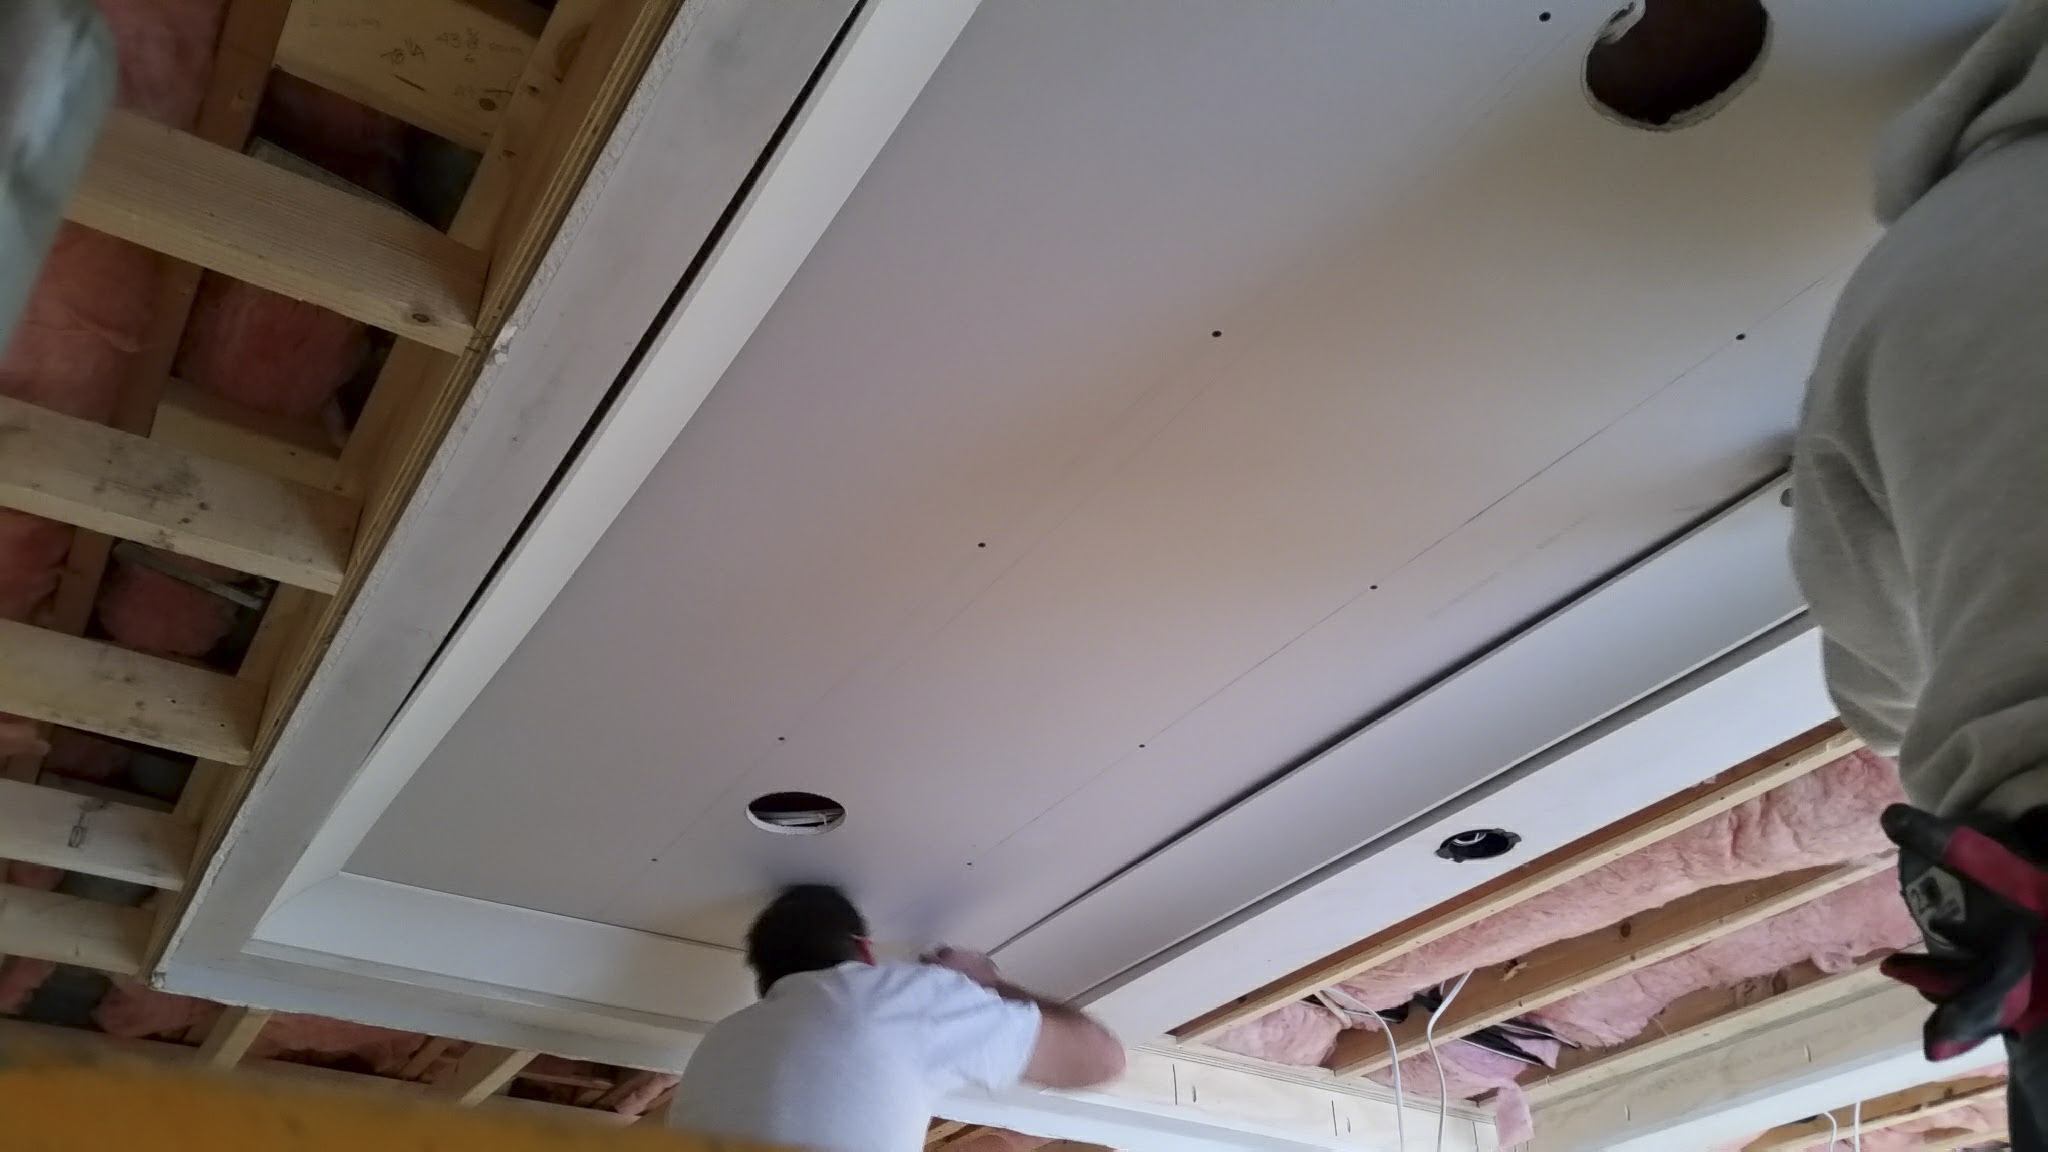 Coffered ceiling secured to ceiling framing. Securing crown molding and drywall panels.